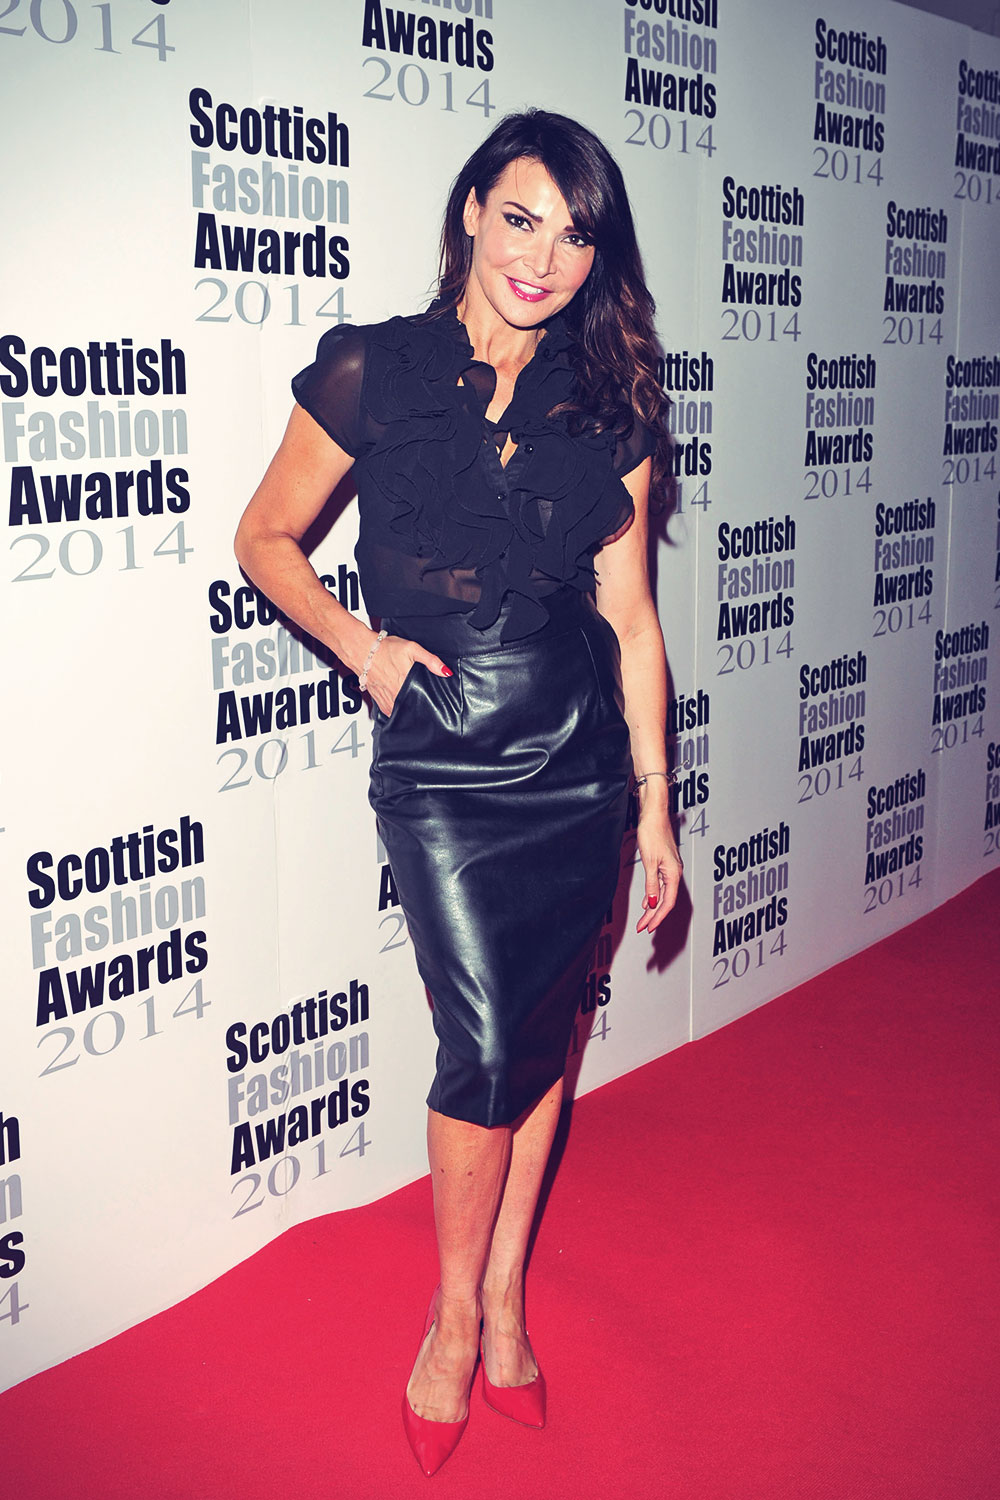 Lizzie Cundy attends The Scottish Fashion Awards